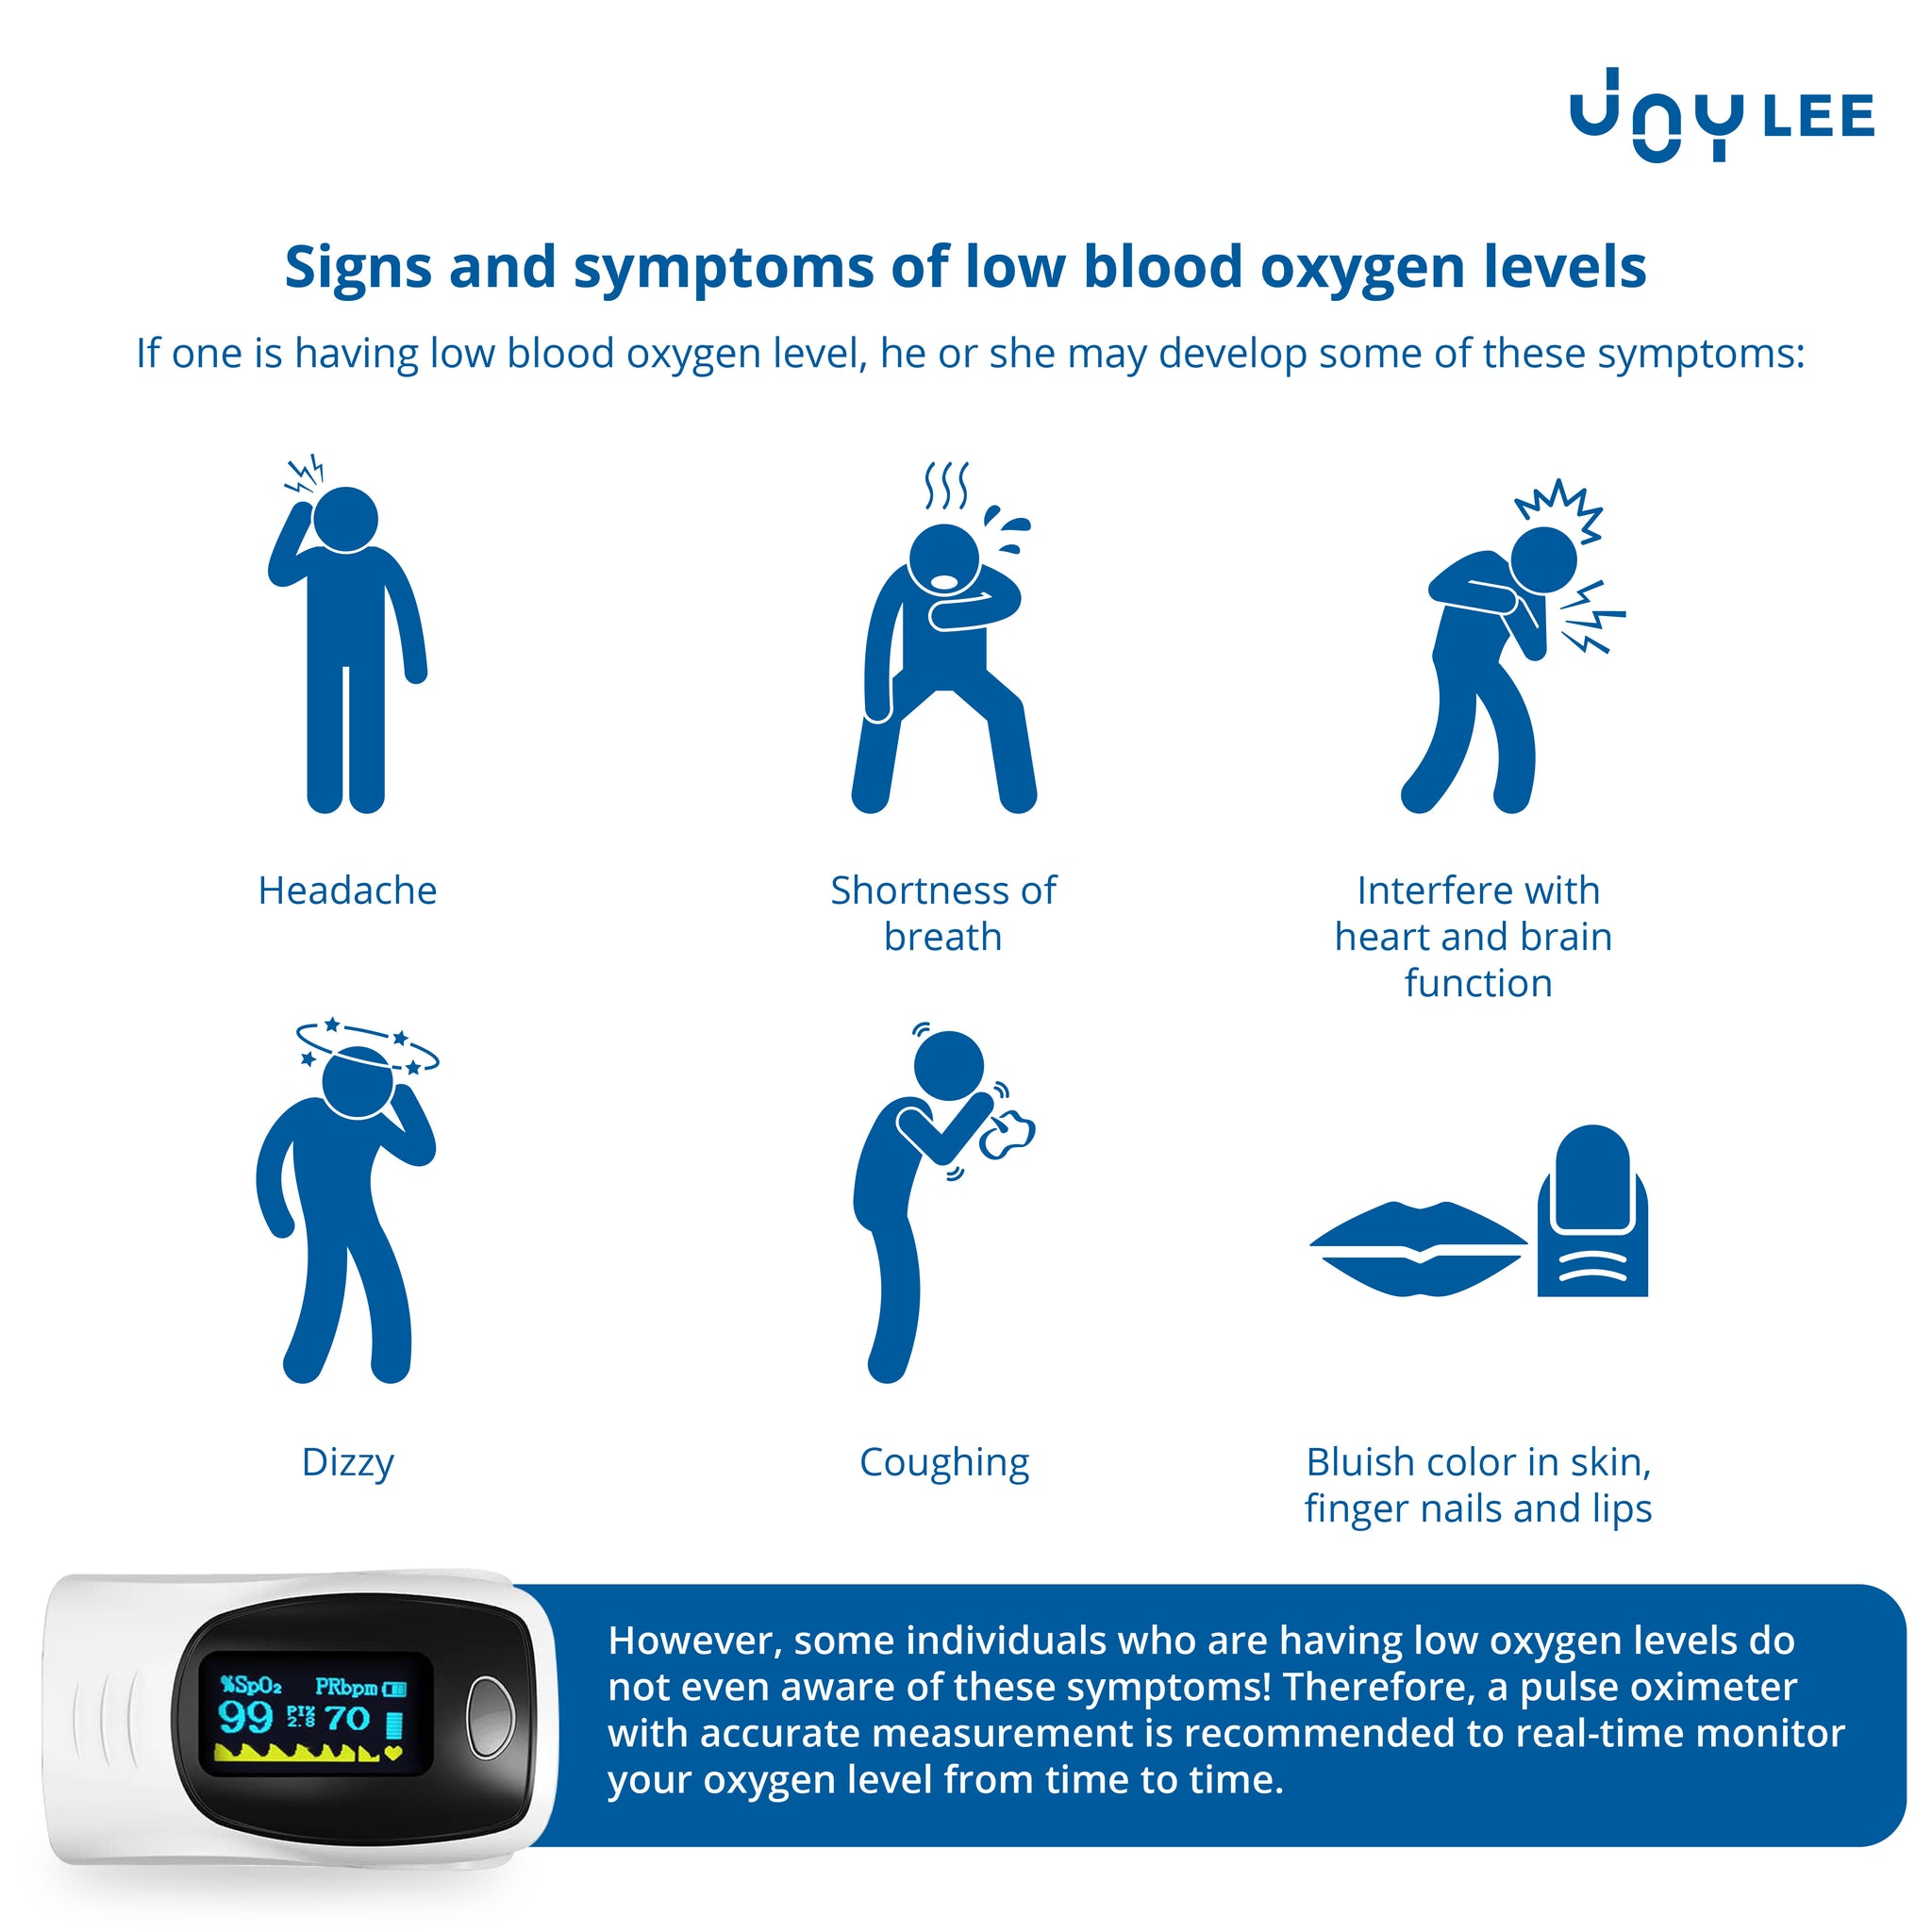 sign and symptoms of low blood oxygen saturation level